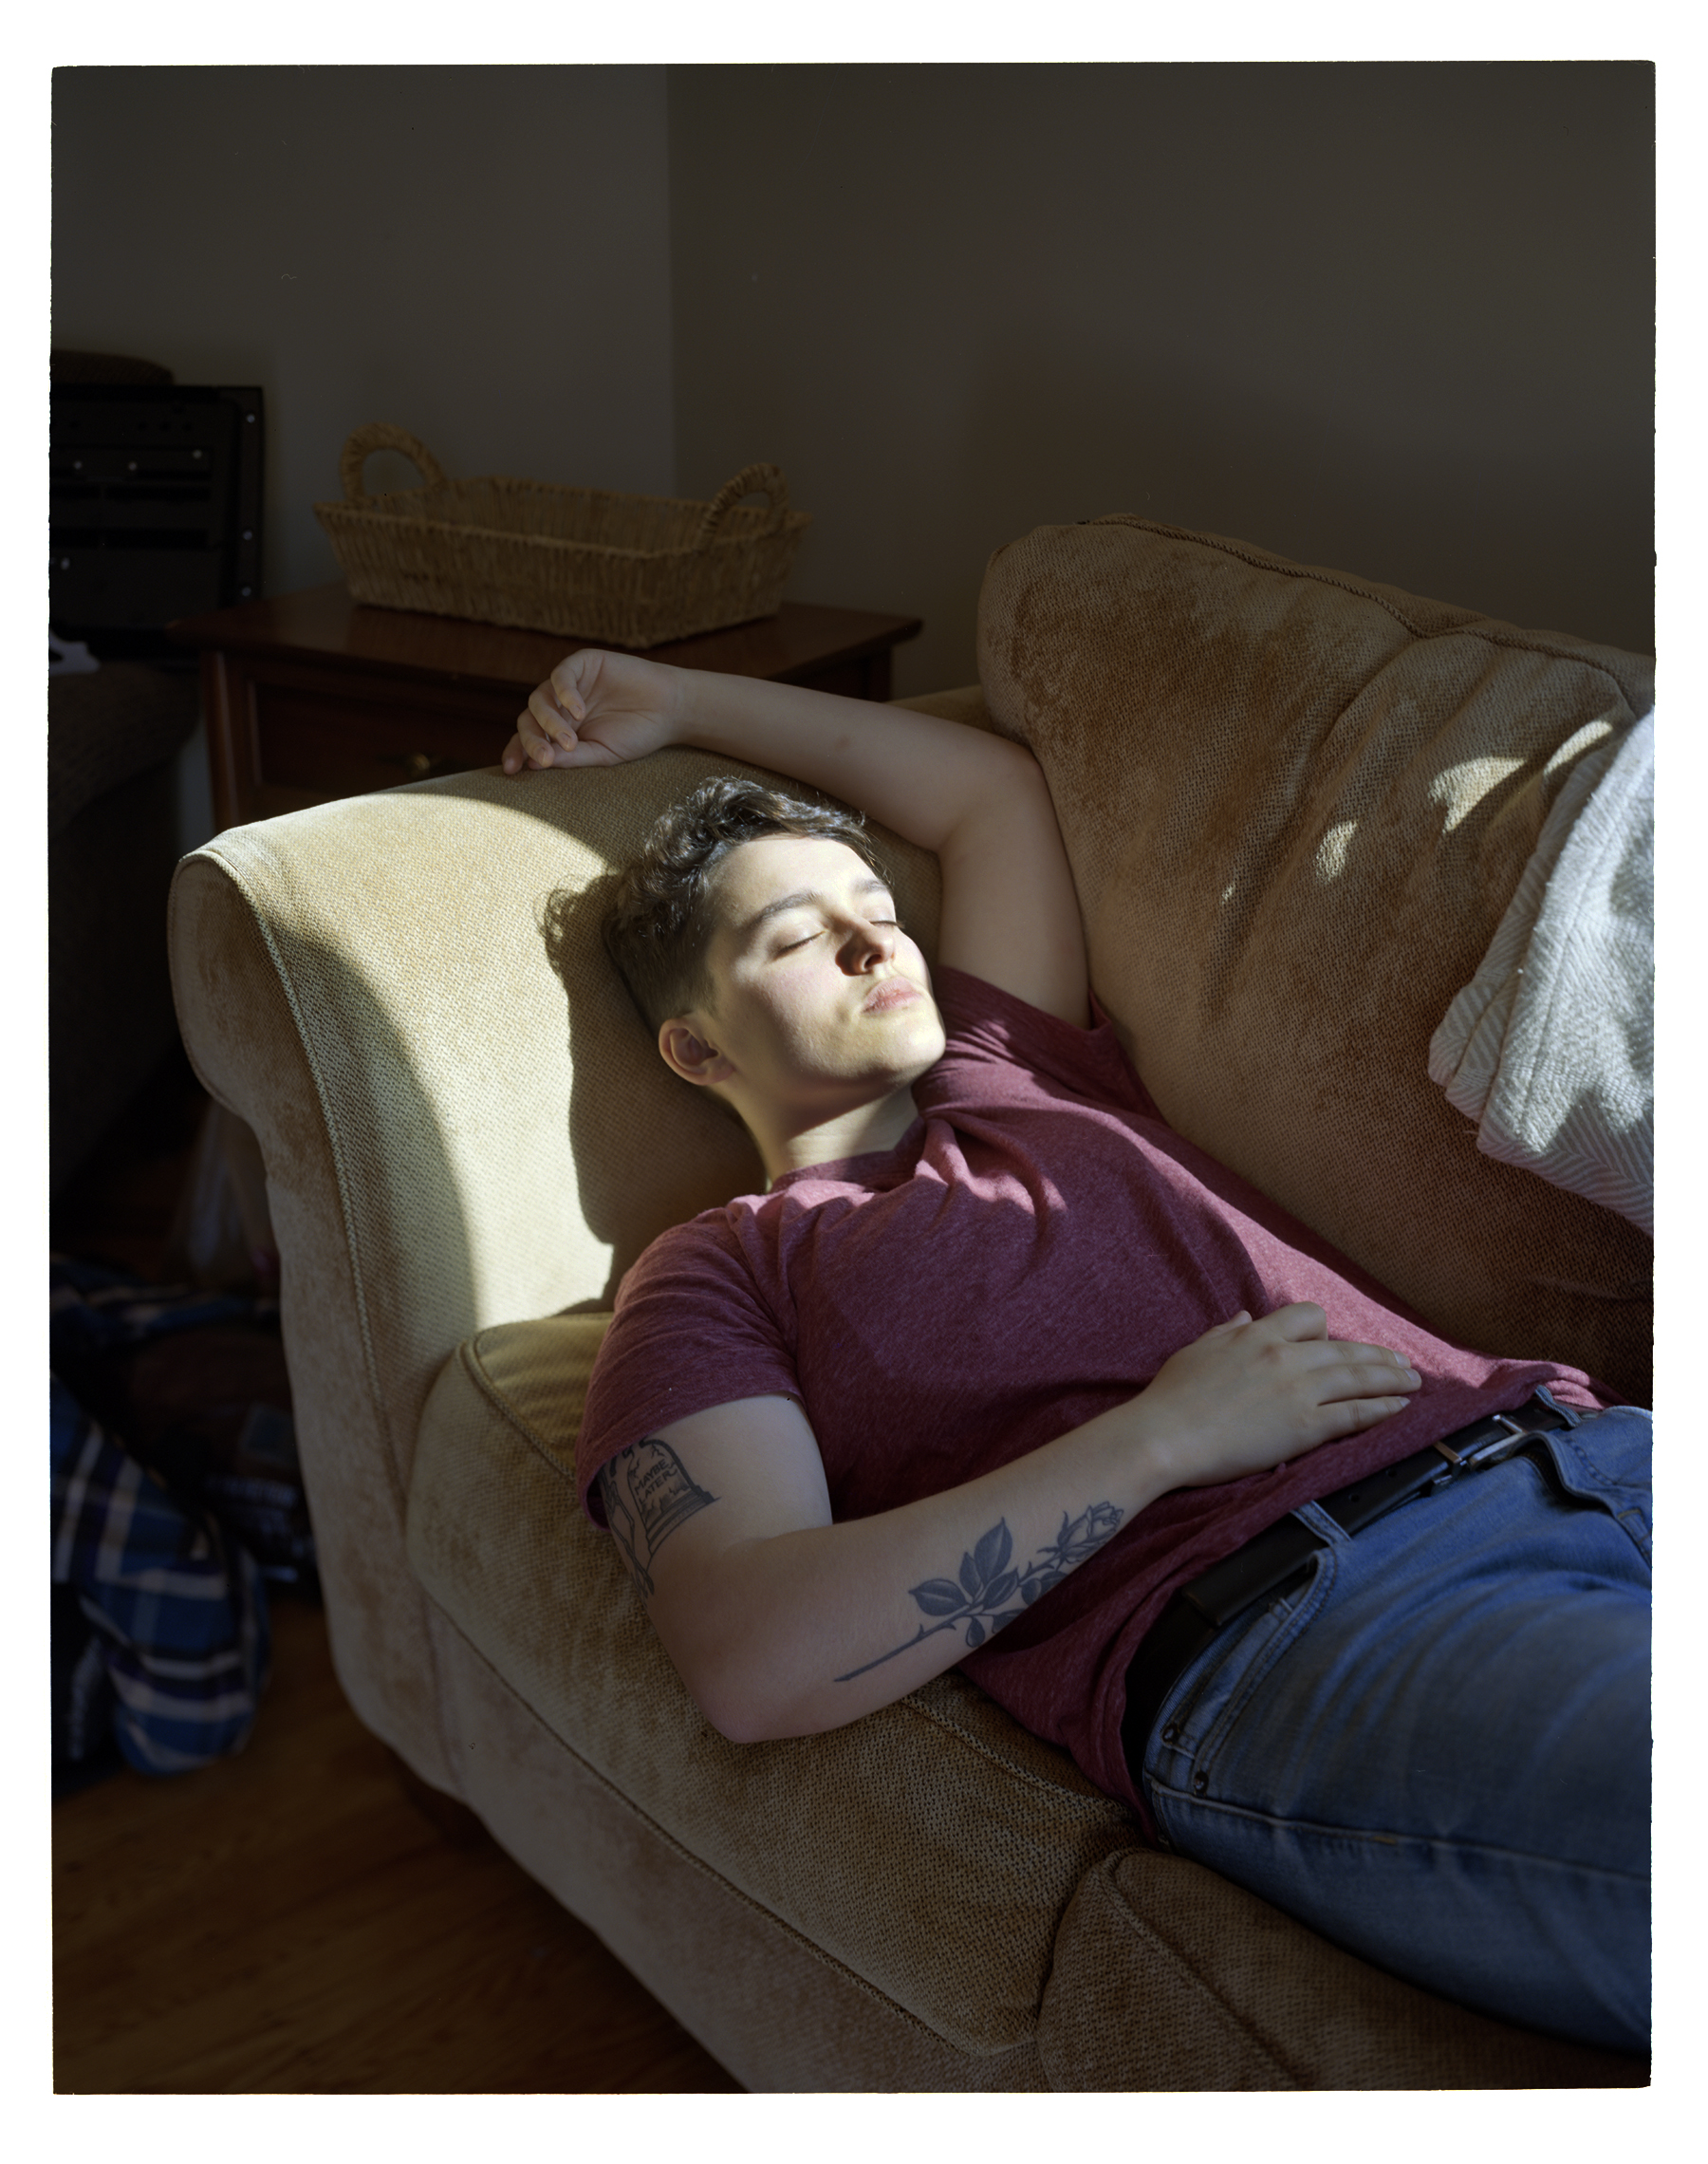 couch 2.jpg